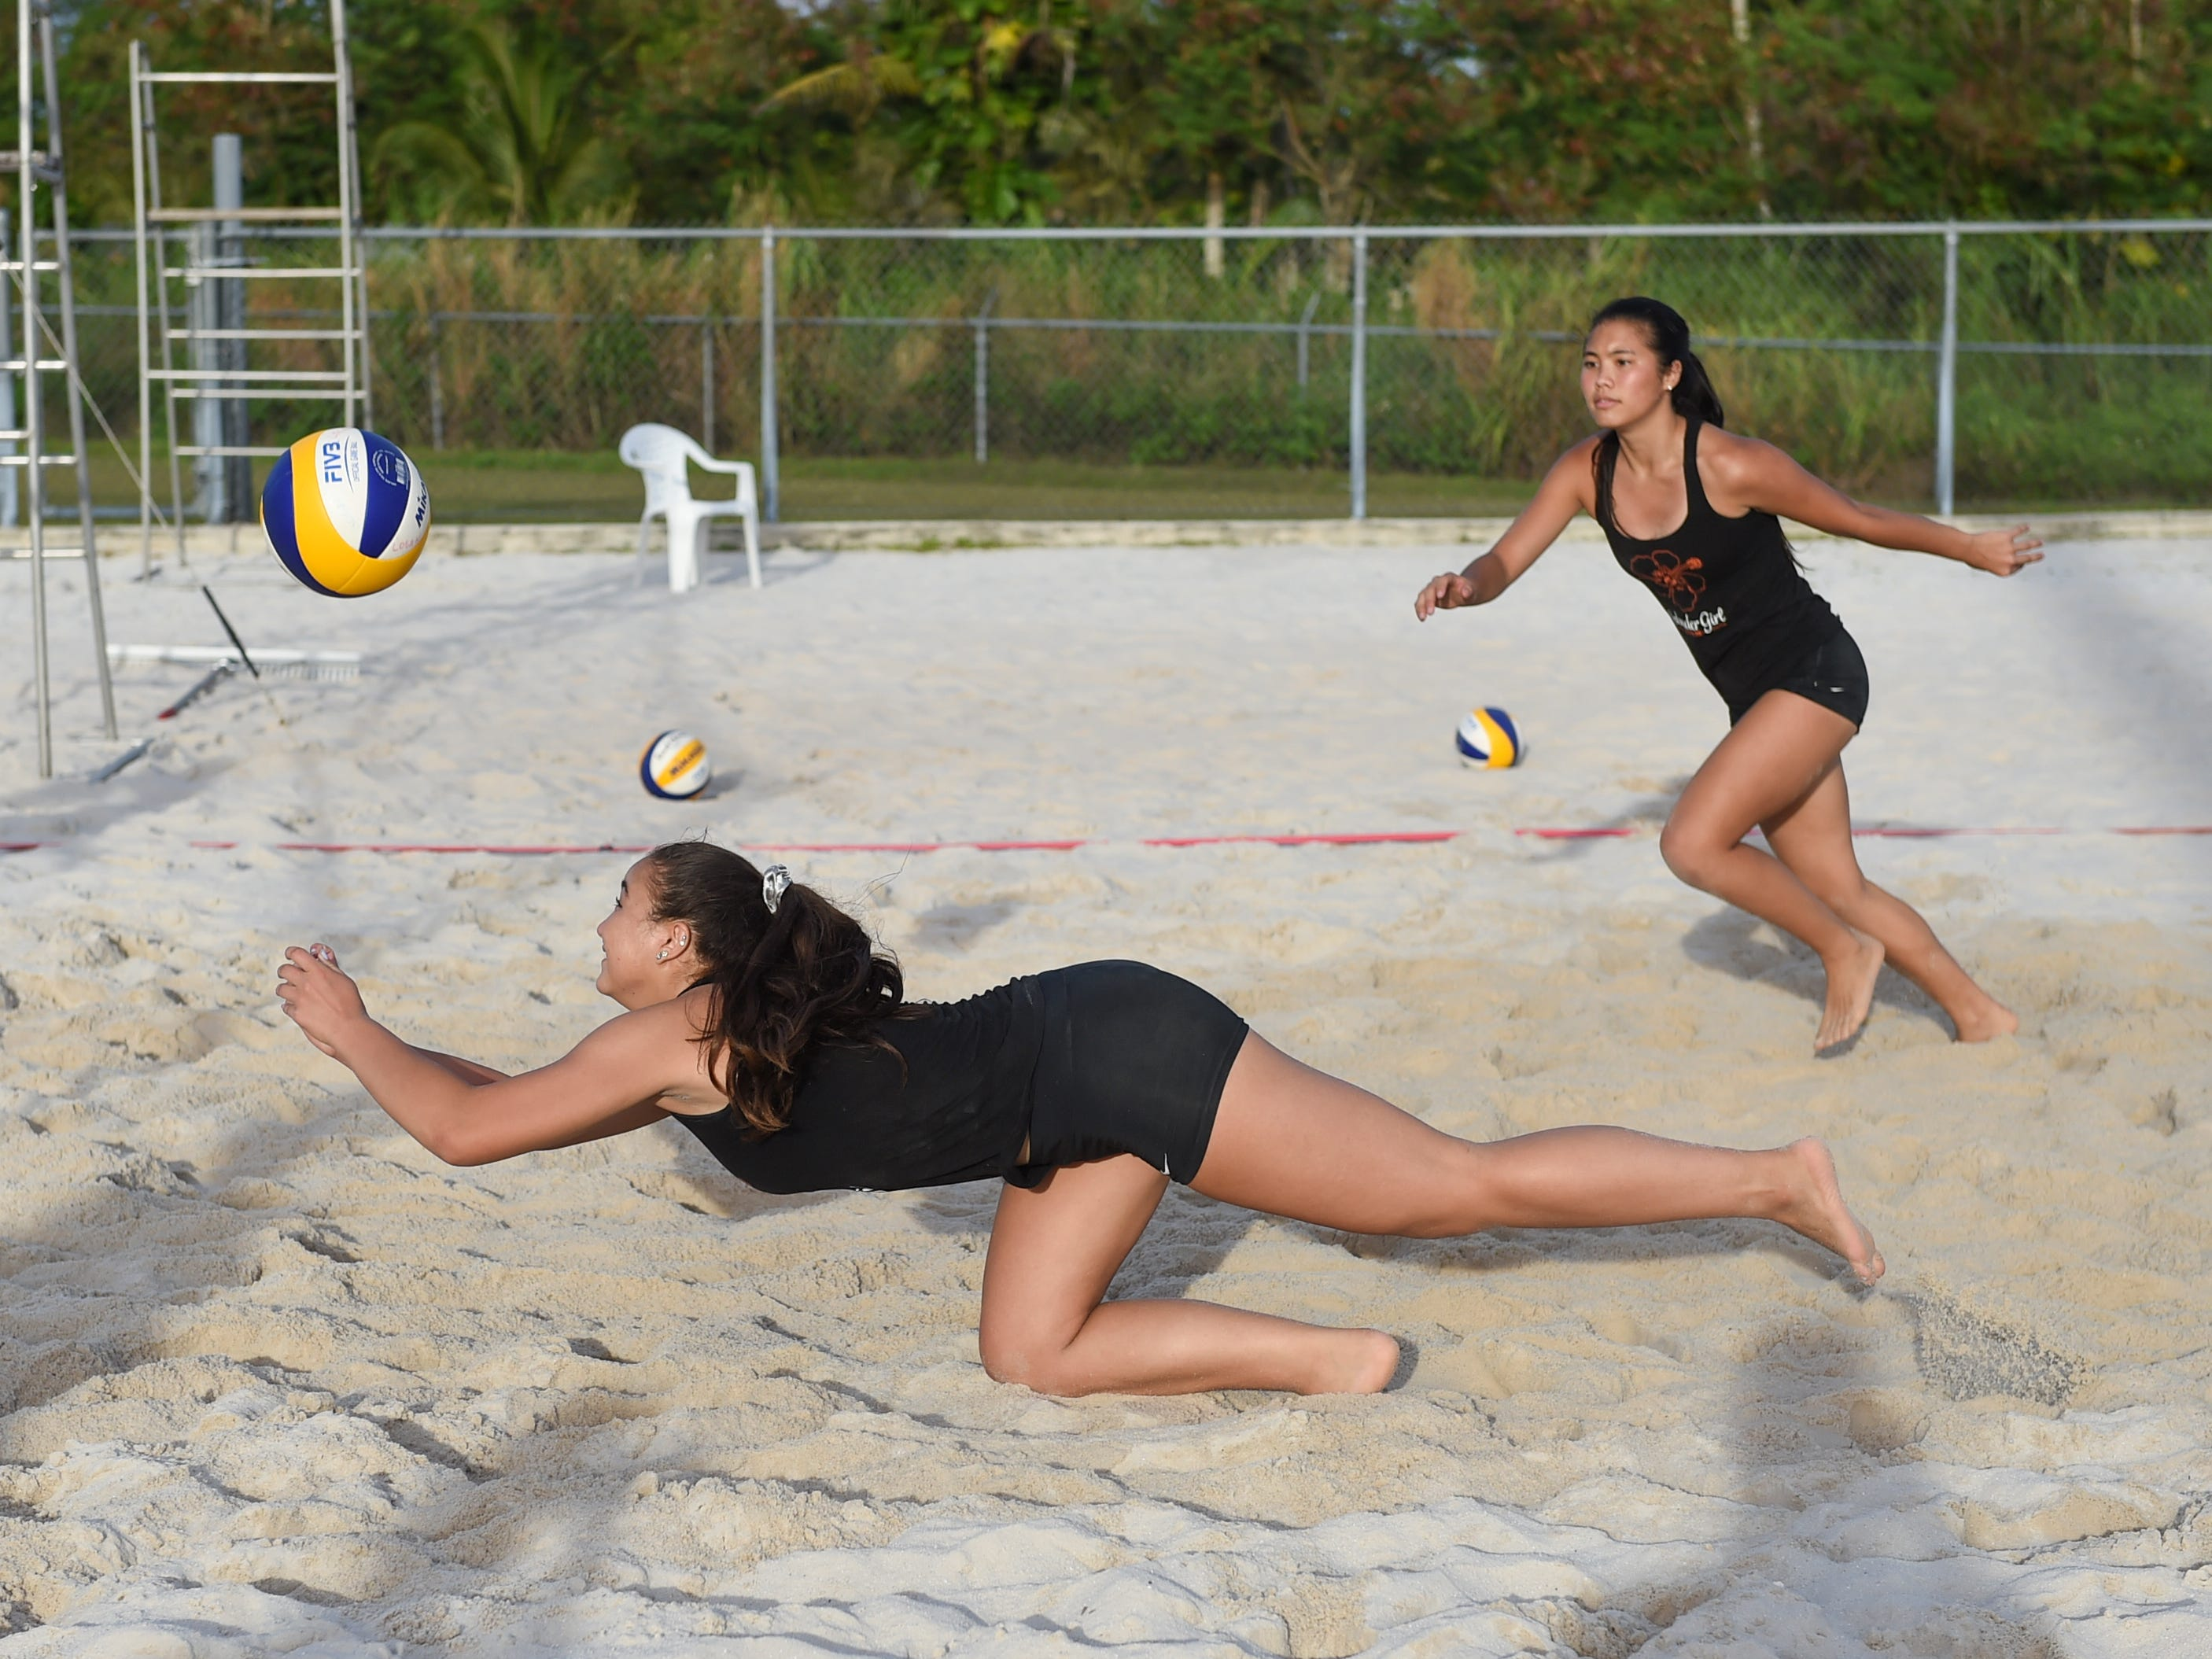 Tylee Shepherd digs during the IIAAG Beach Volleyball championship game at the Guam Football Association National Training Center in Dededo, March 12, 2019.